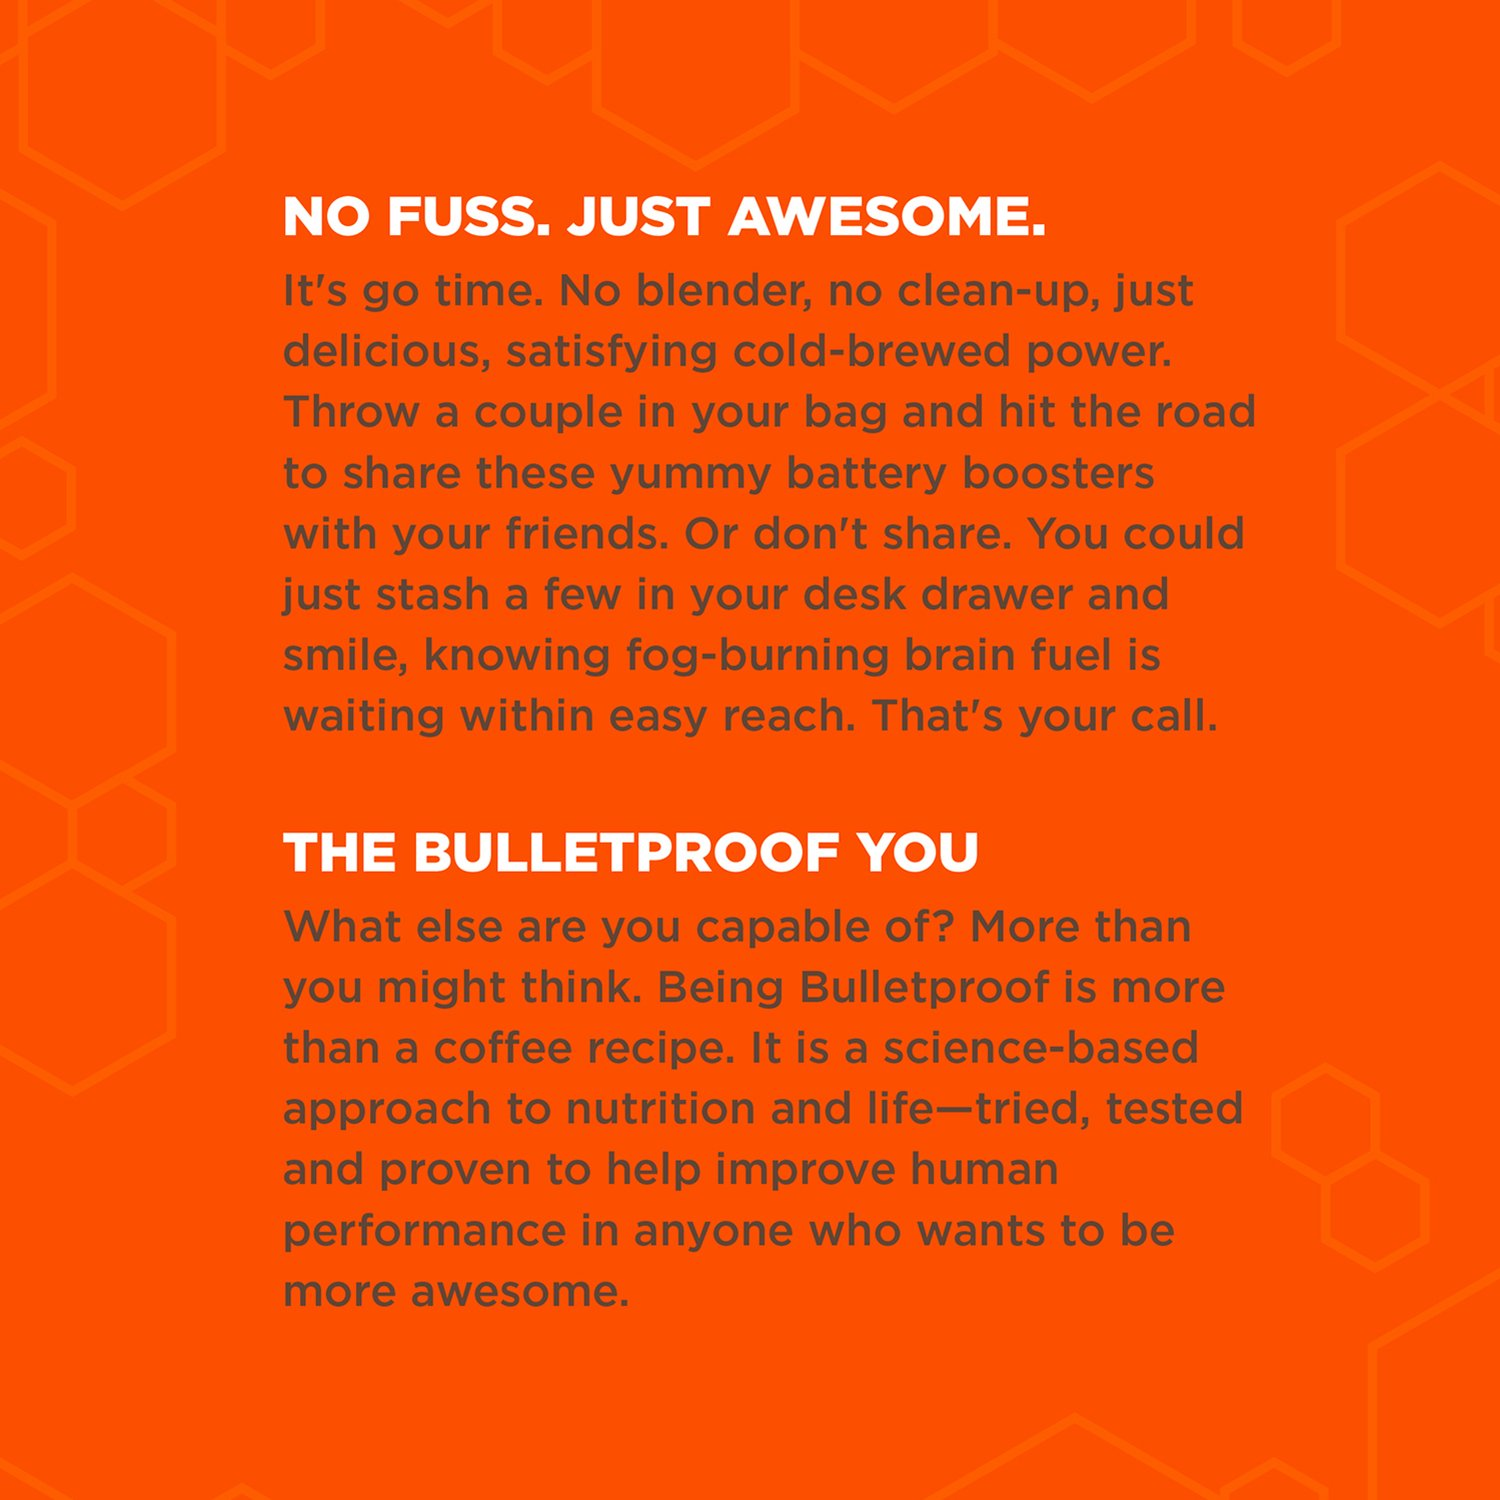 Bulletproof Coffee Cold Brew Ready To Drink- Ketogentic Diet, Sugar-Free, Includes Grass-Fed Butter and Brain Octane Oil, Vanilla (12 Pack) by Bulletproof (Image #3)